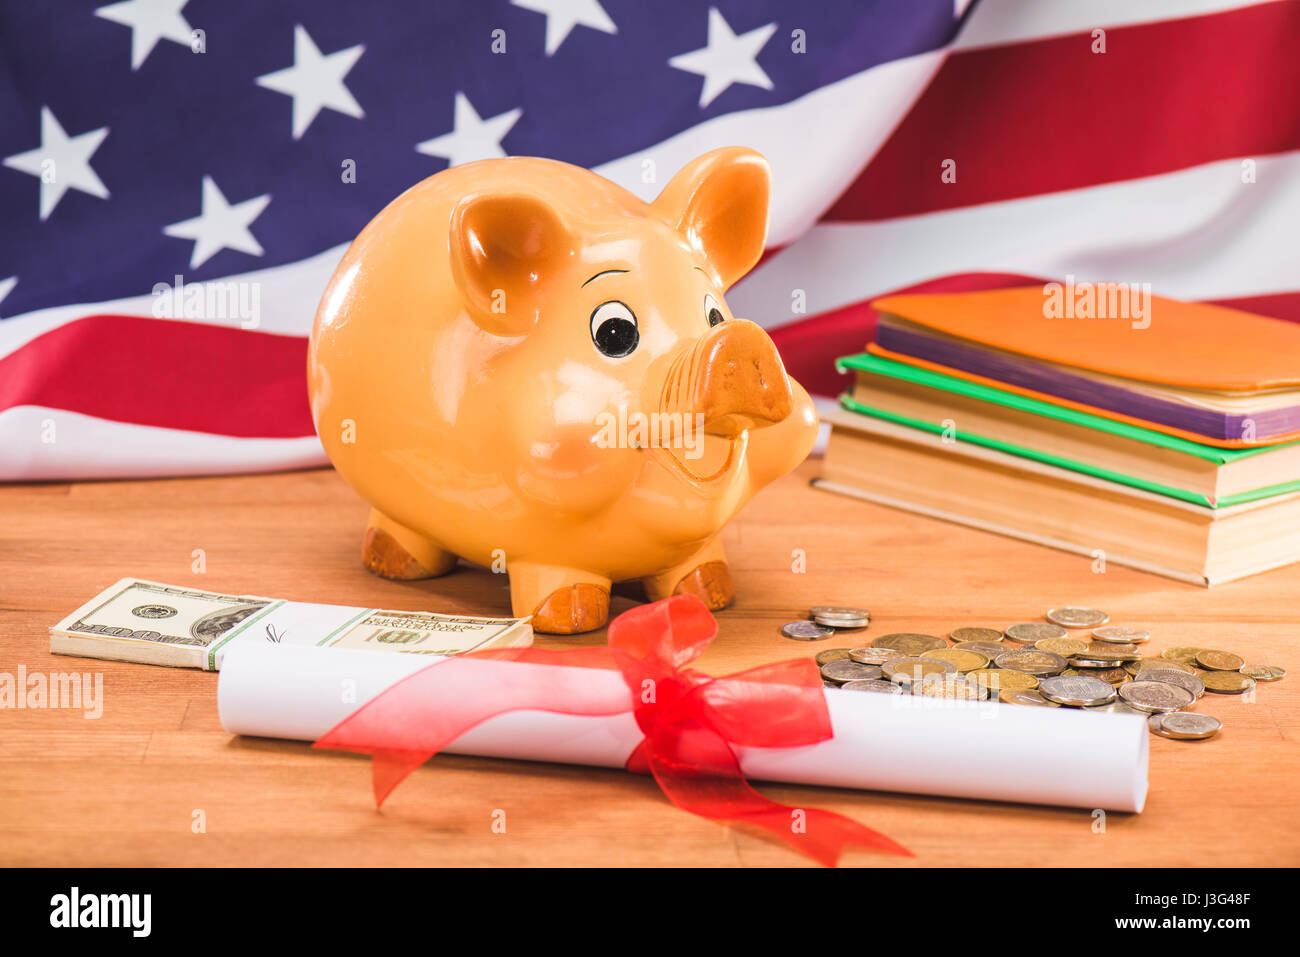 diploma and piggy bank with coins and dollars usa flag behind, education concept - Stock Image